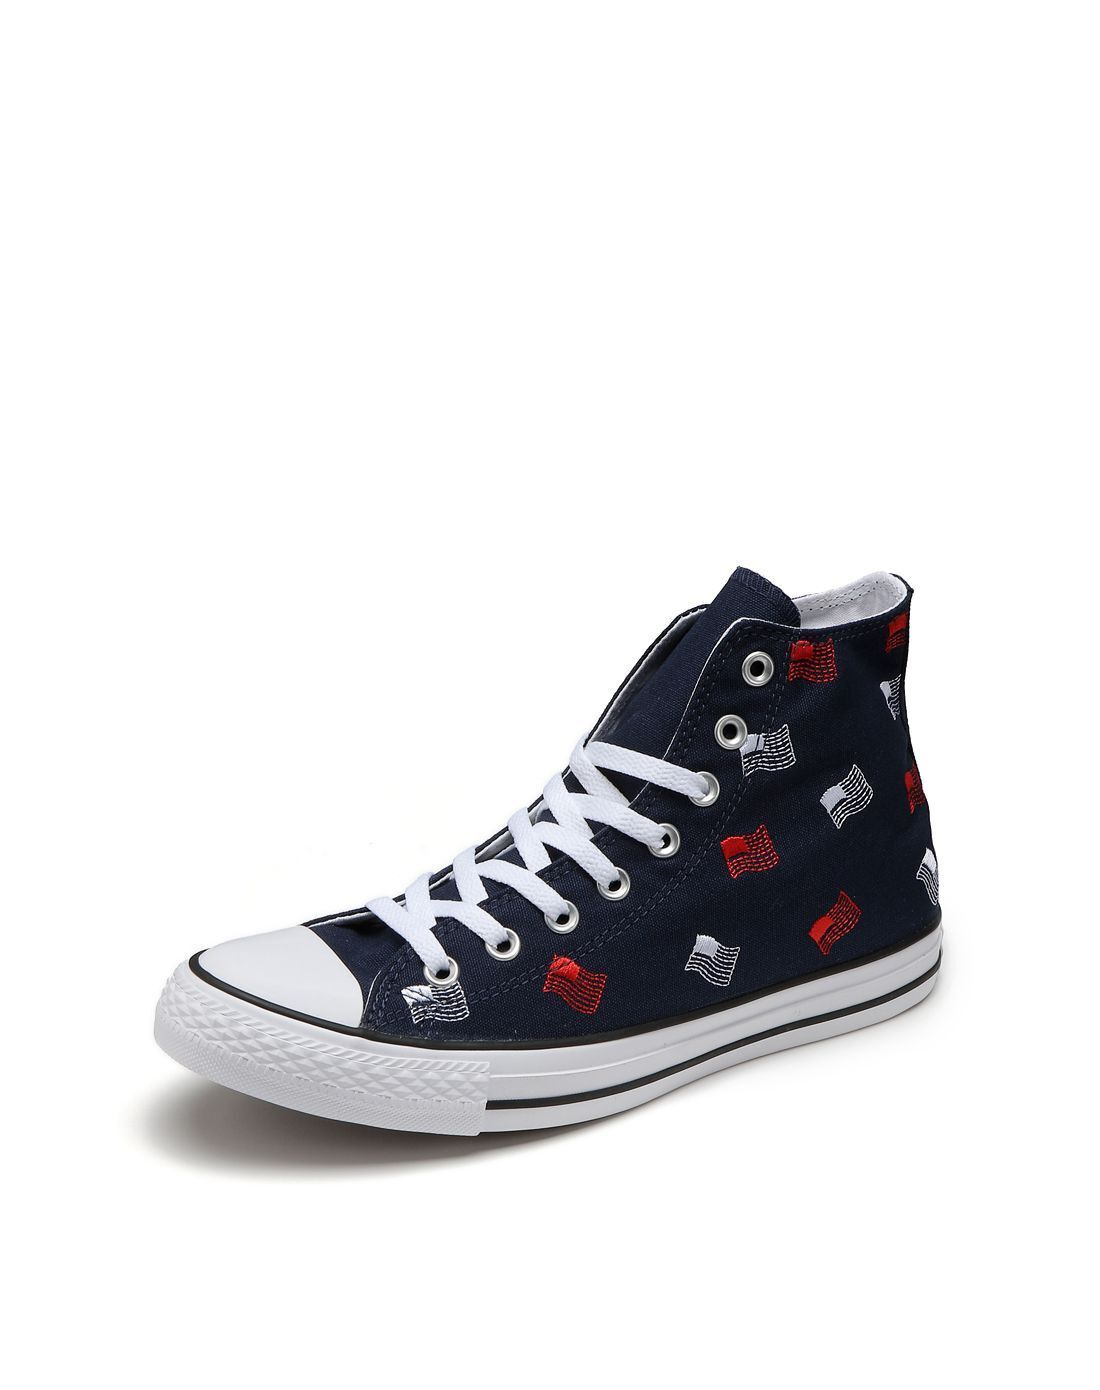 Converse Chuck Taylor All Star Hi Top (Men's 9) Obsidian White Flag Sneakers